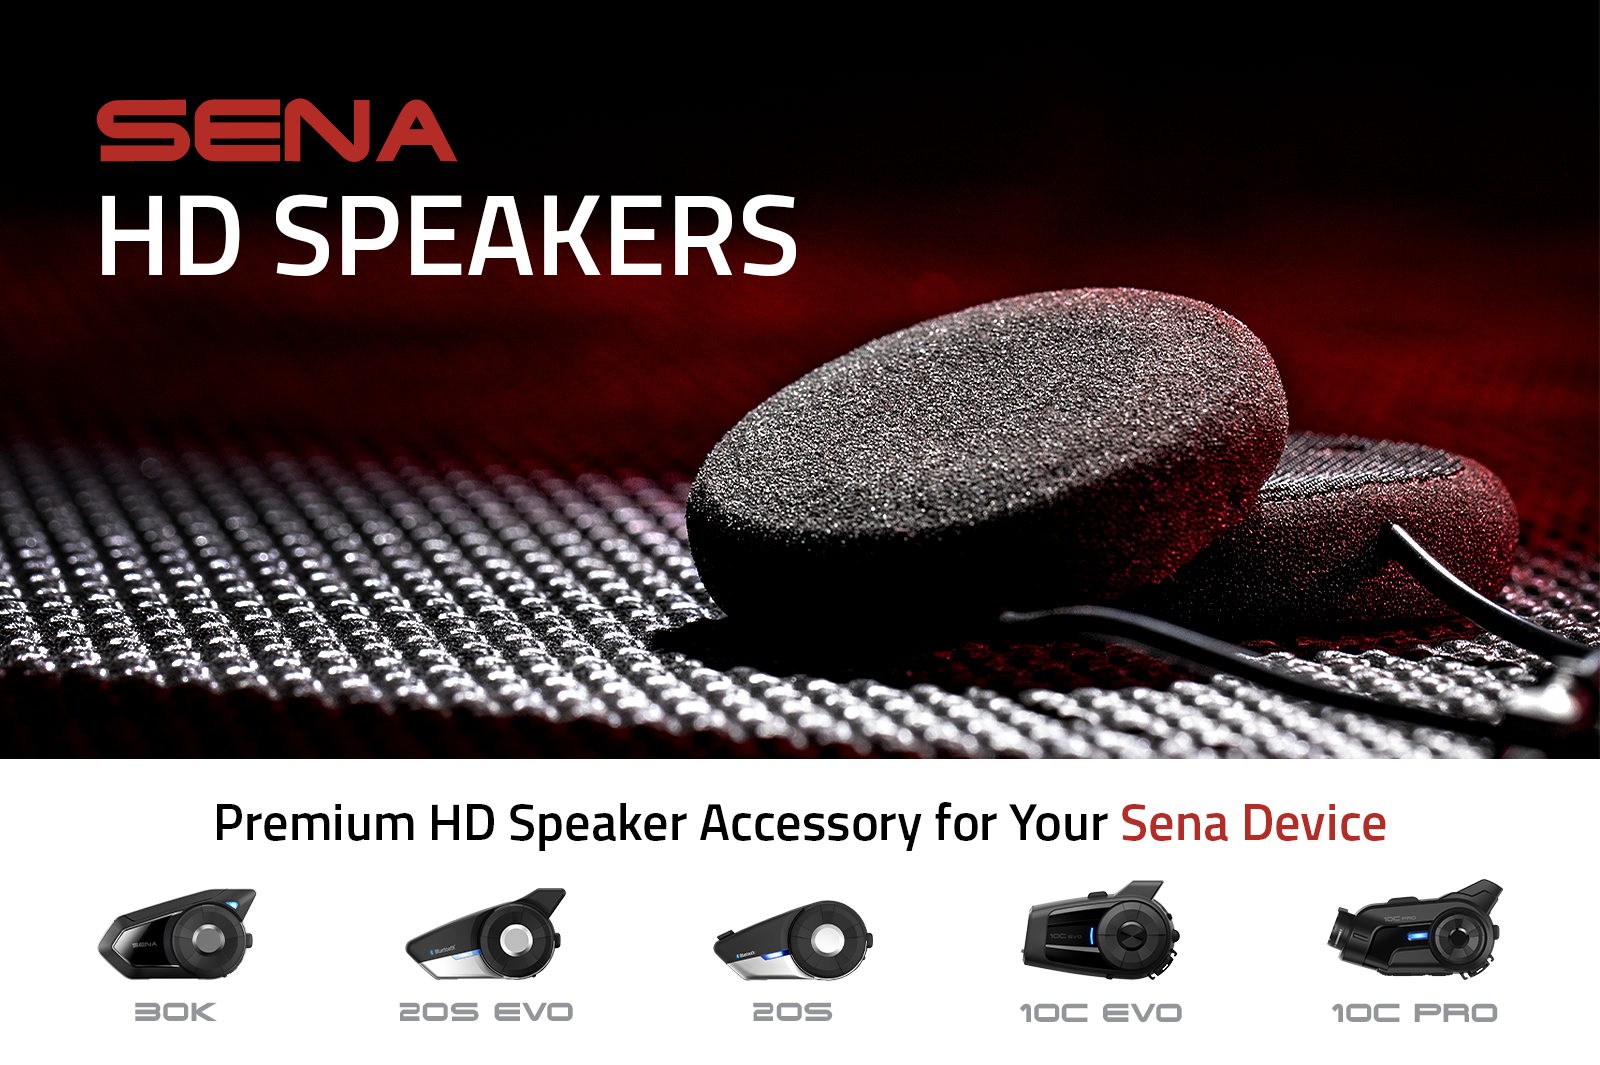 Sena HD Speakers